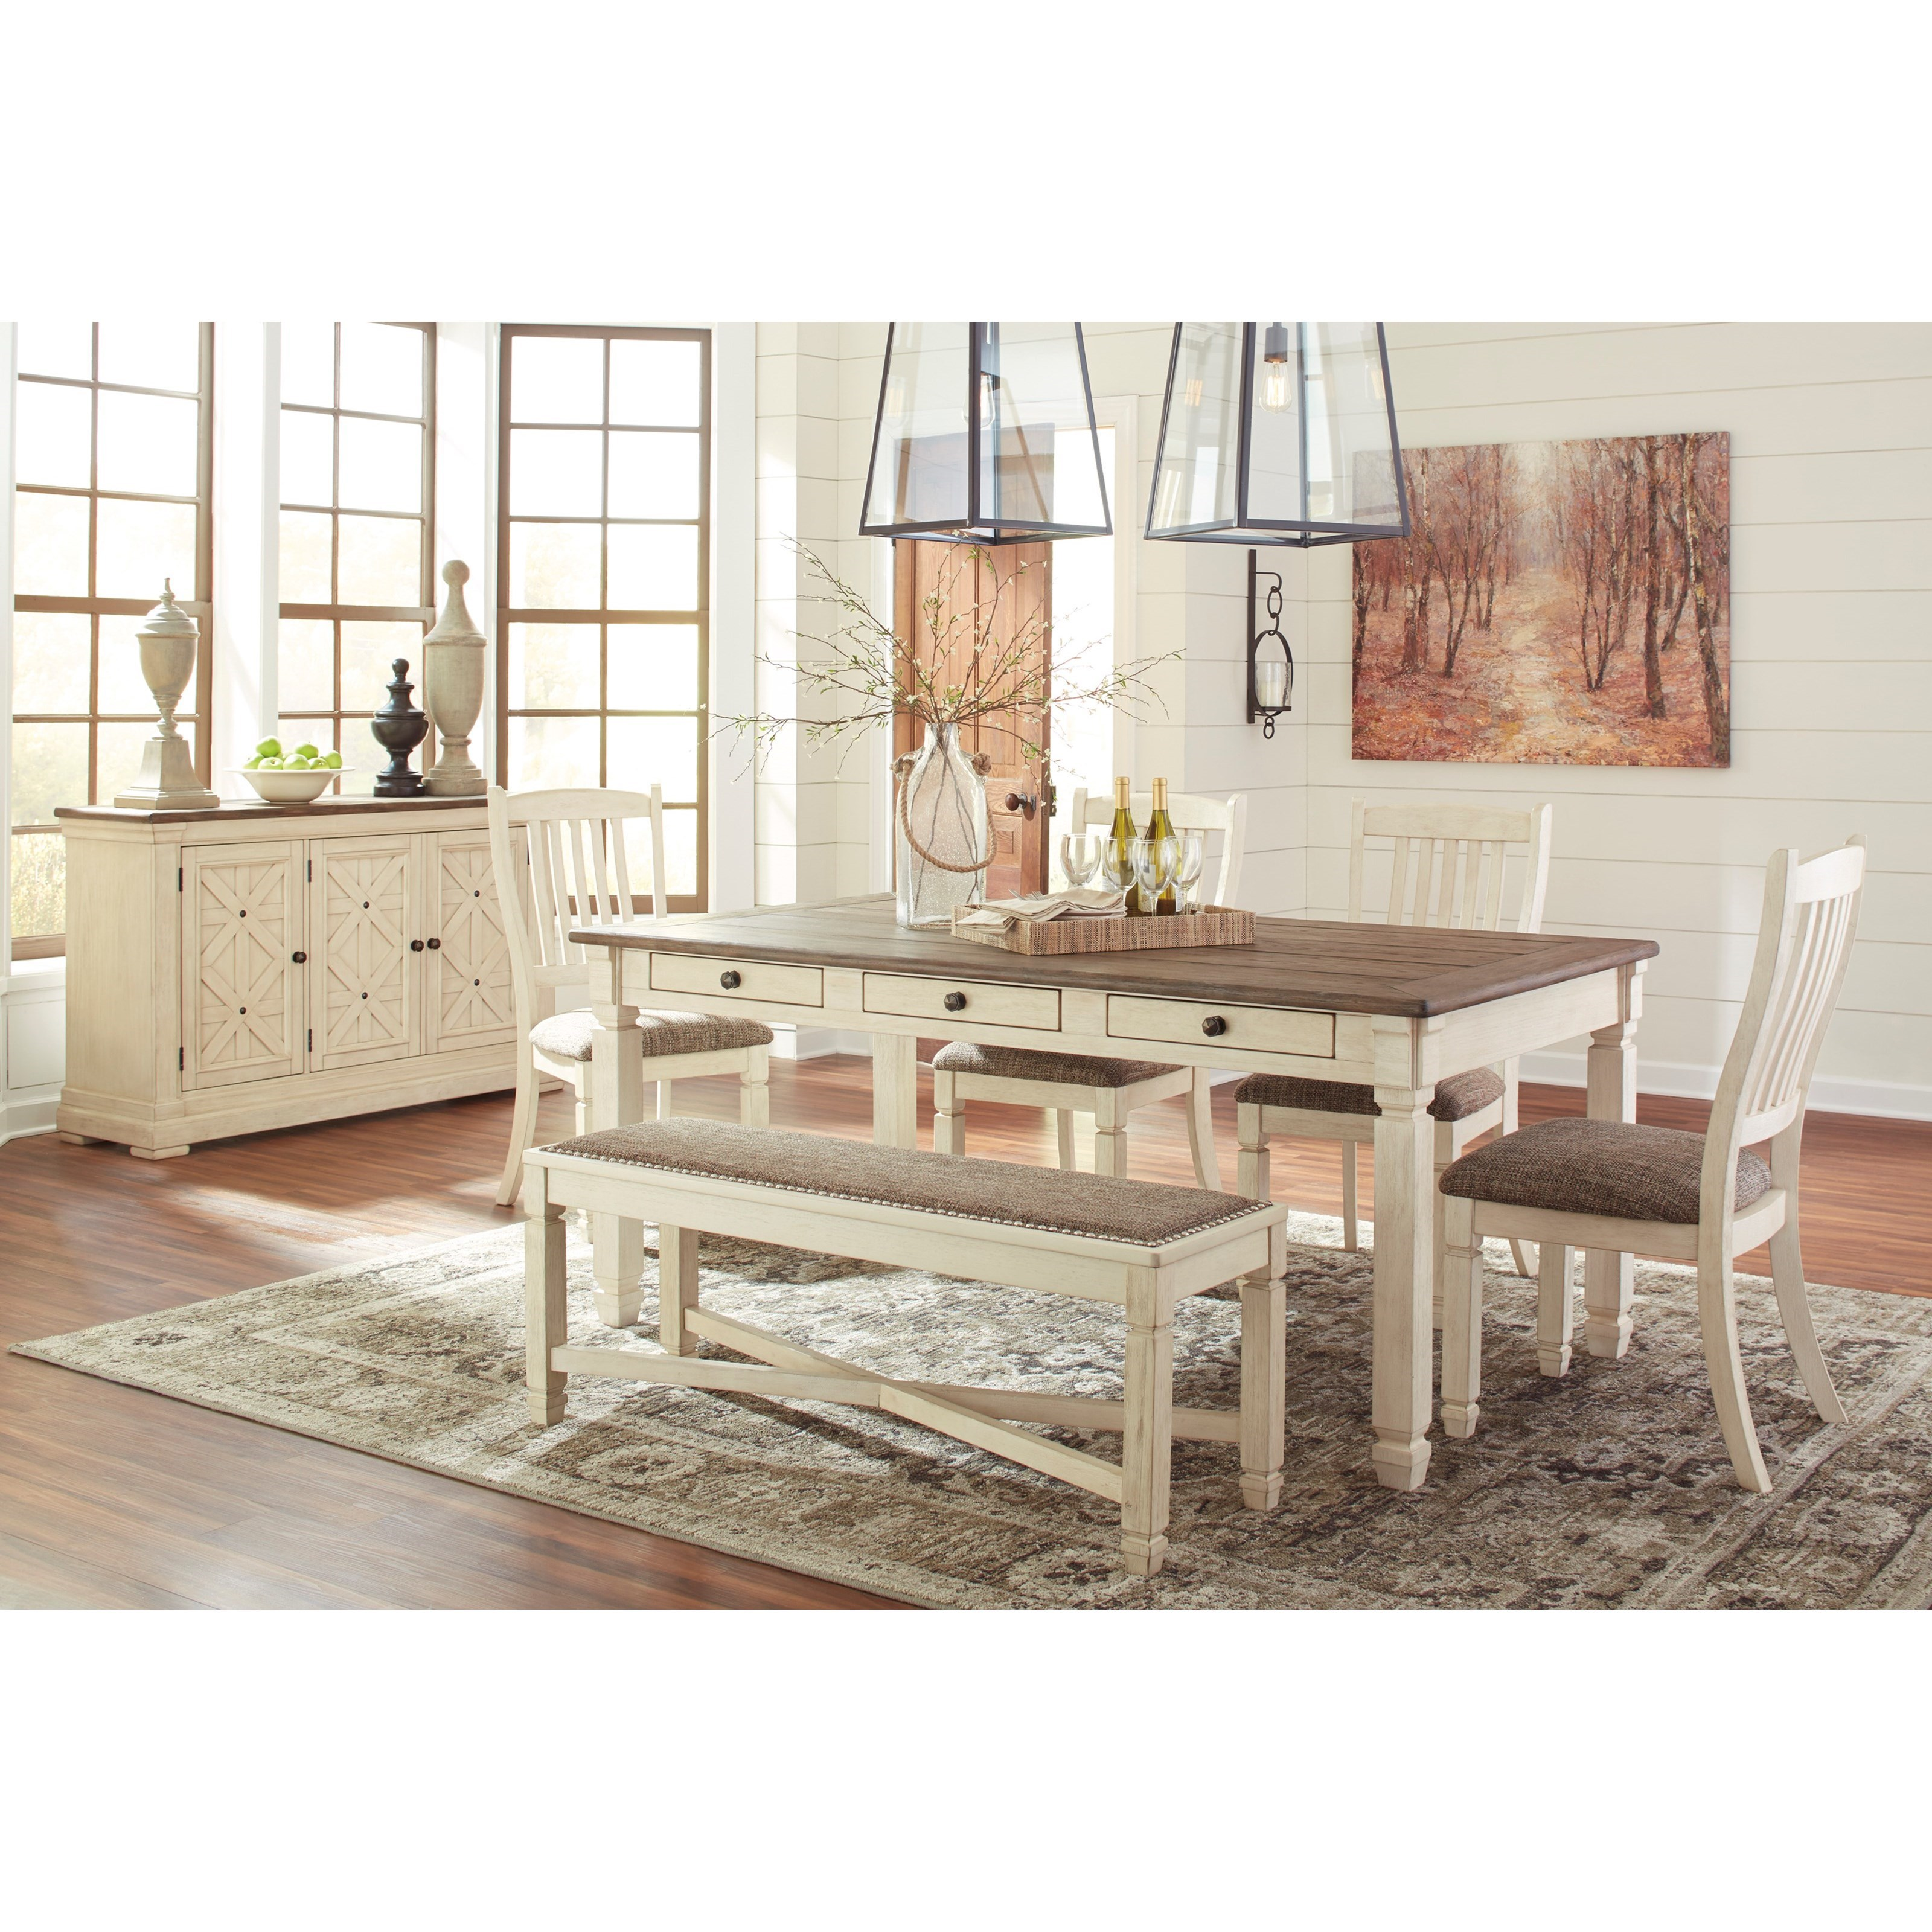 Ashley Dining Room Table And Chairs: Signature Design By Ashley Bolanburg Casual Dining Room